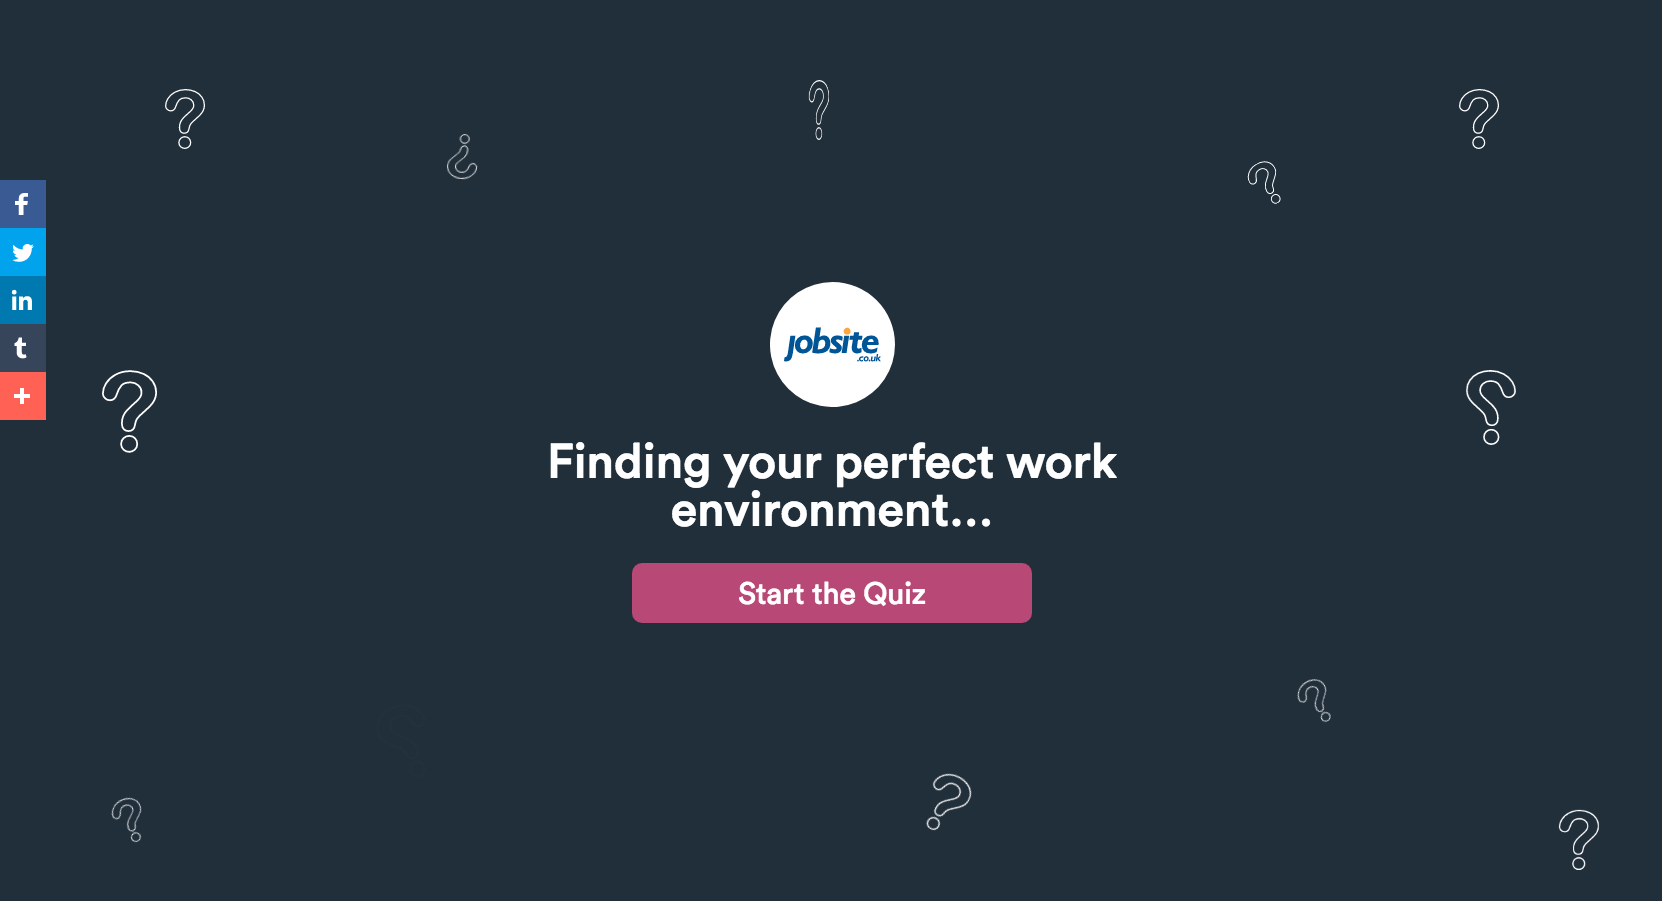 the jobsite guide to finding your perfect work environment